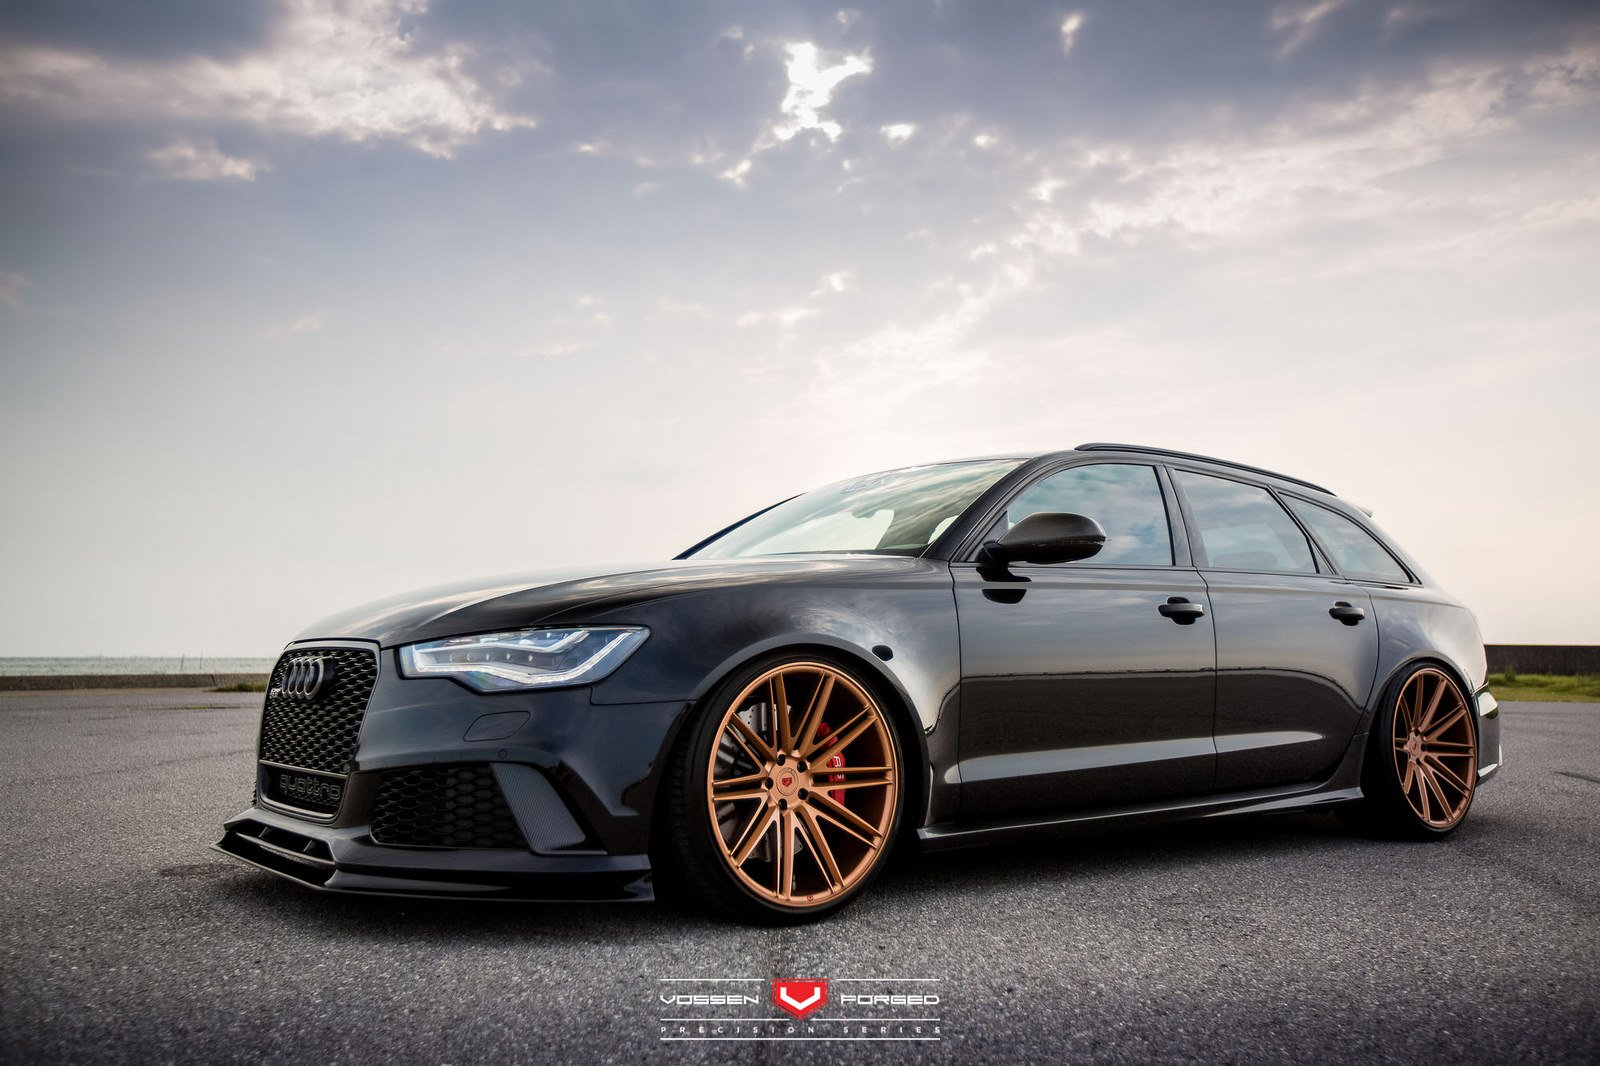 Audi Rs6 Avant Vossen Wheels Cars Black Wallpaper